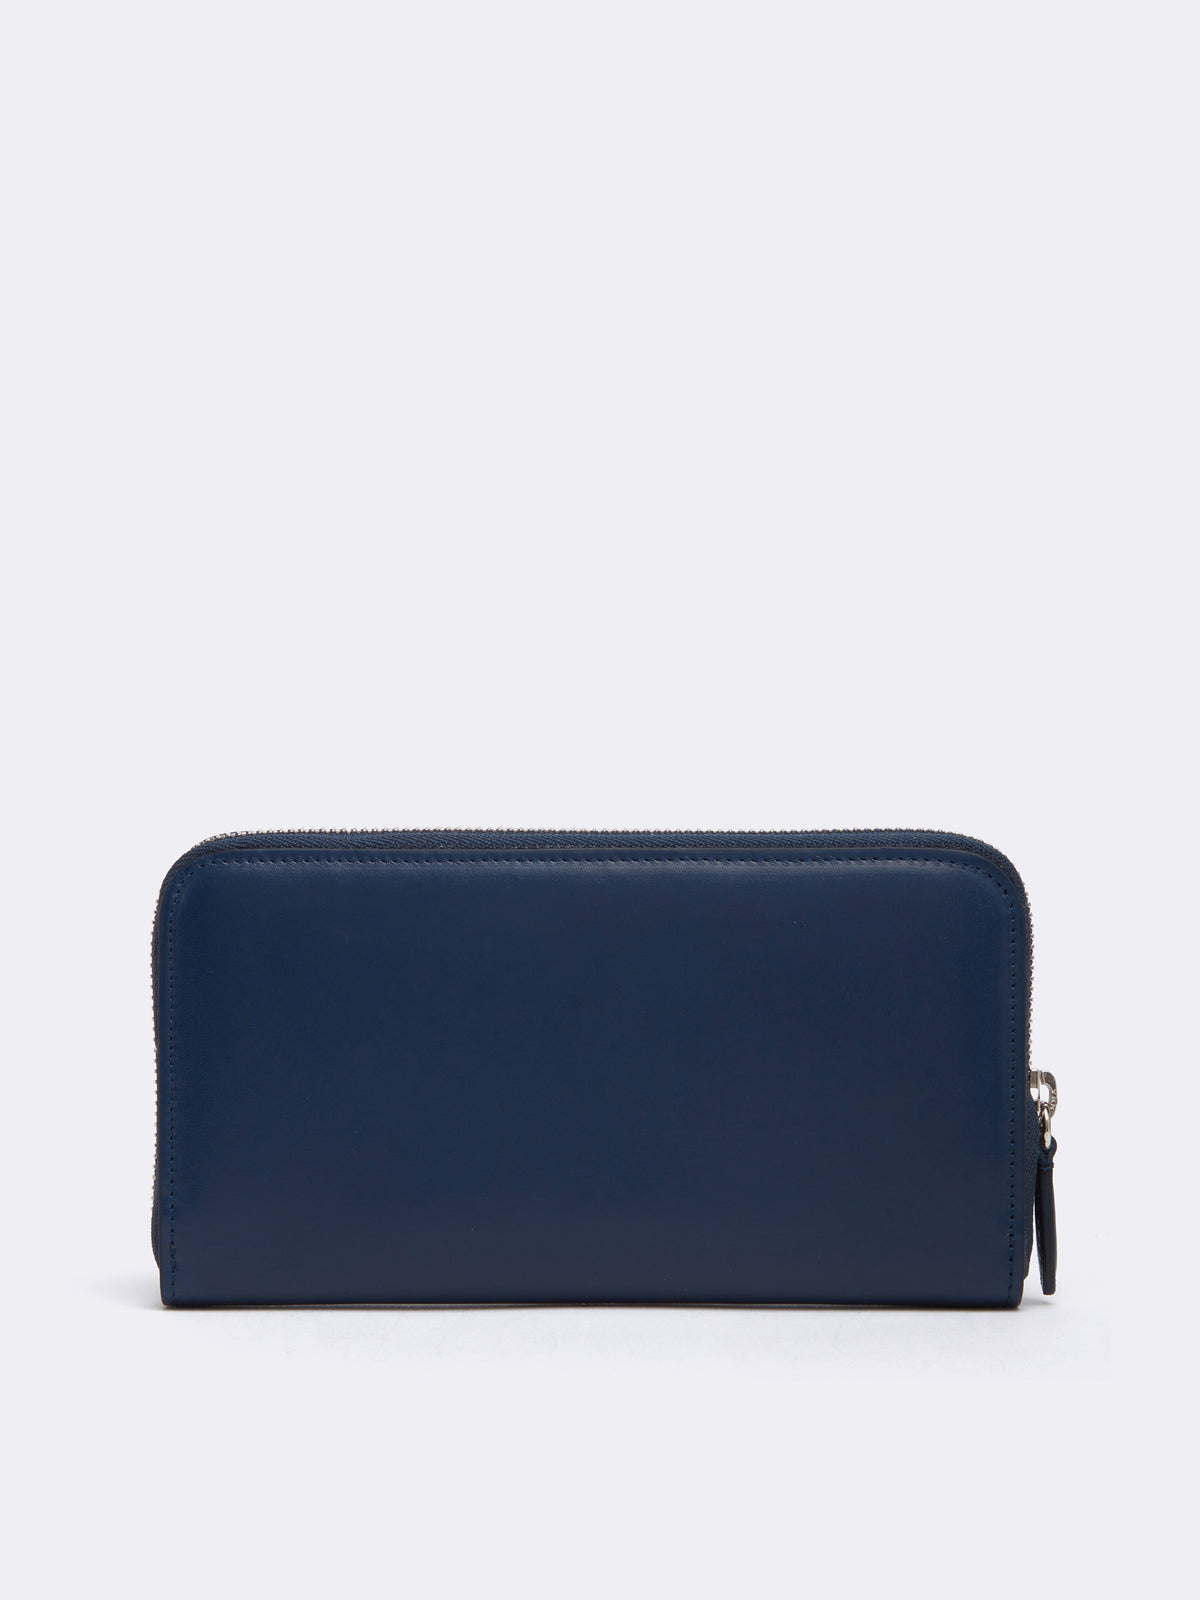 Mark Cross Leather Zip Wallet Seta Box Navy Back